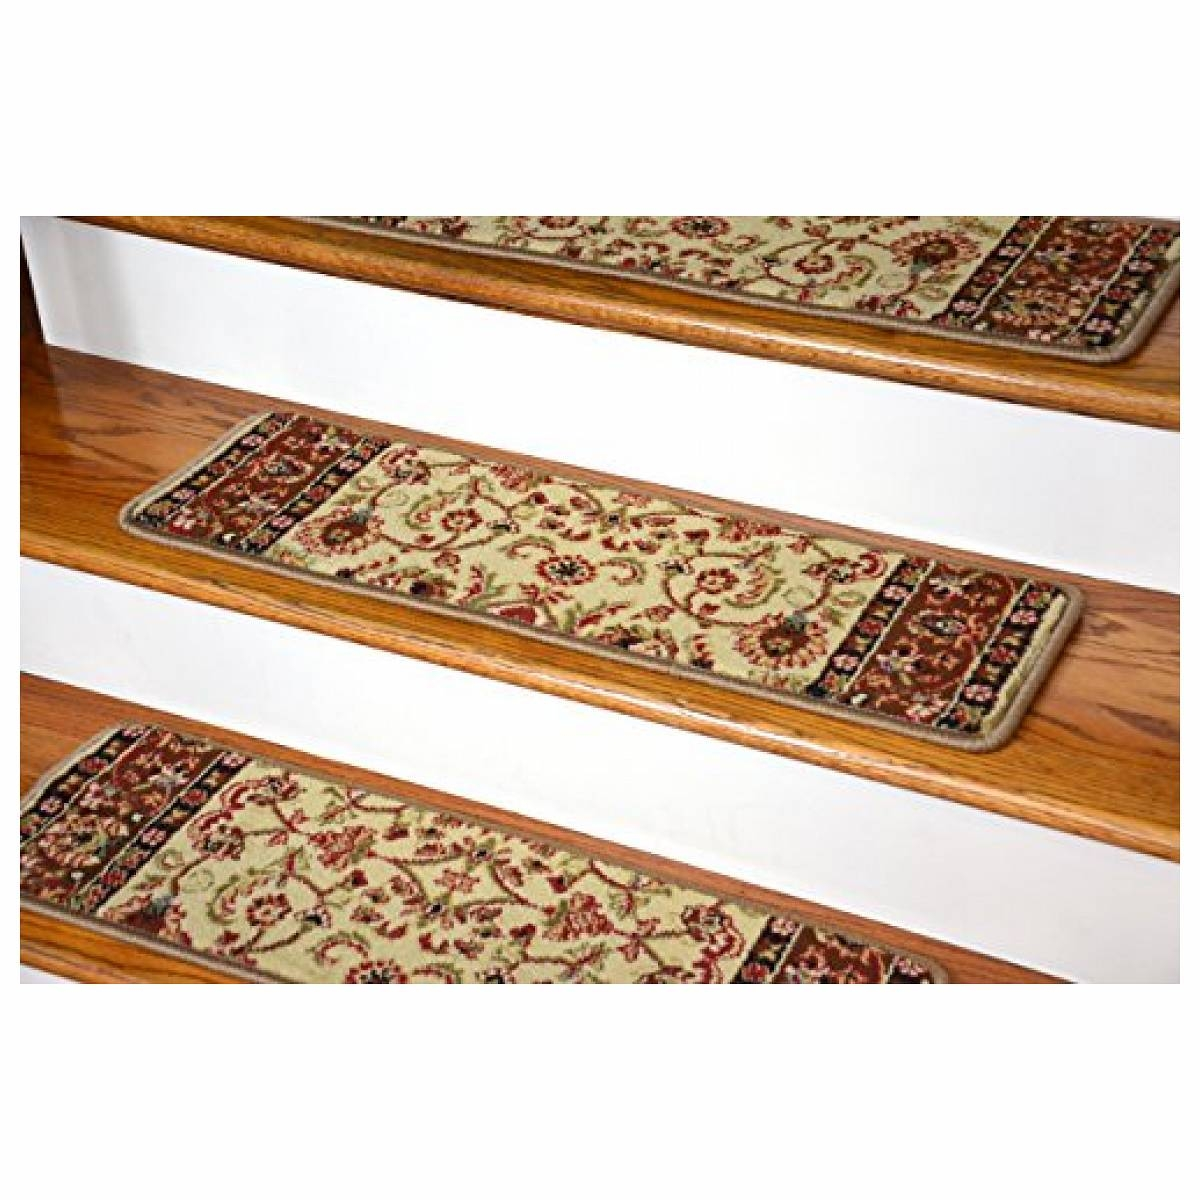 Rugs Carpet Stair Step Rugs Carpet Stair Treads In Stair Treads And Rugs (Image 12 of 15)